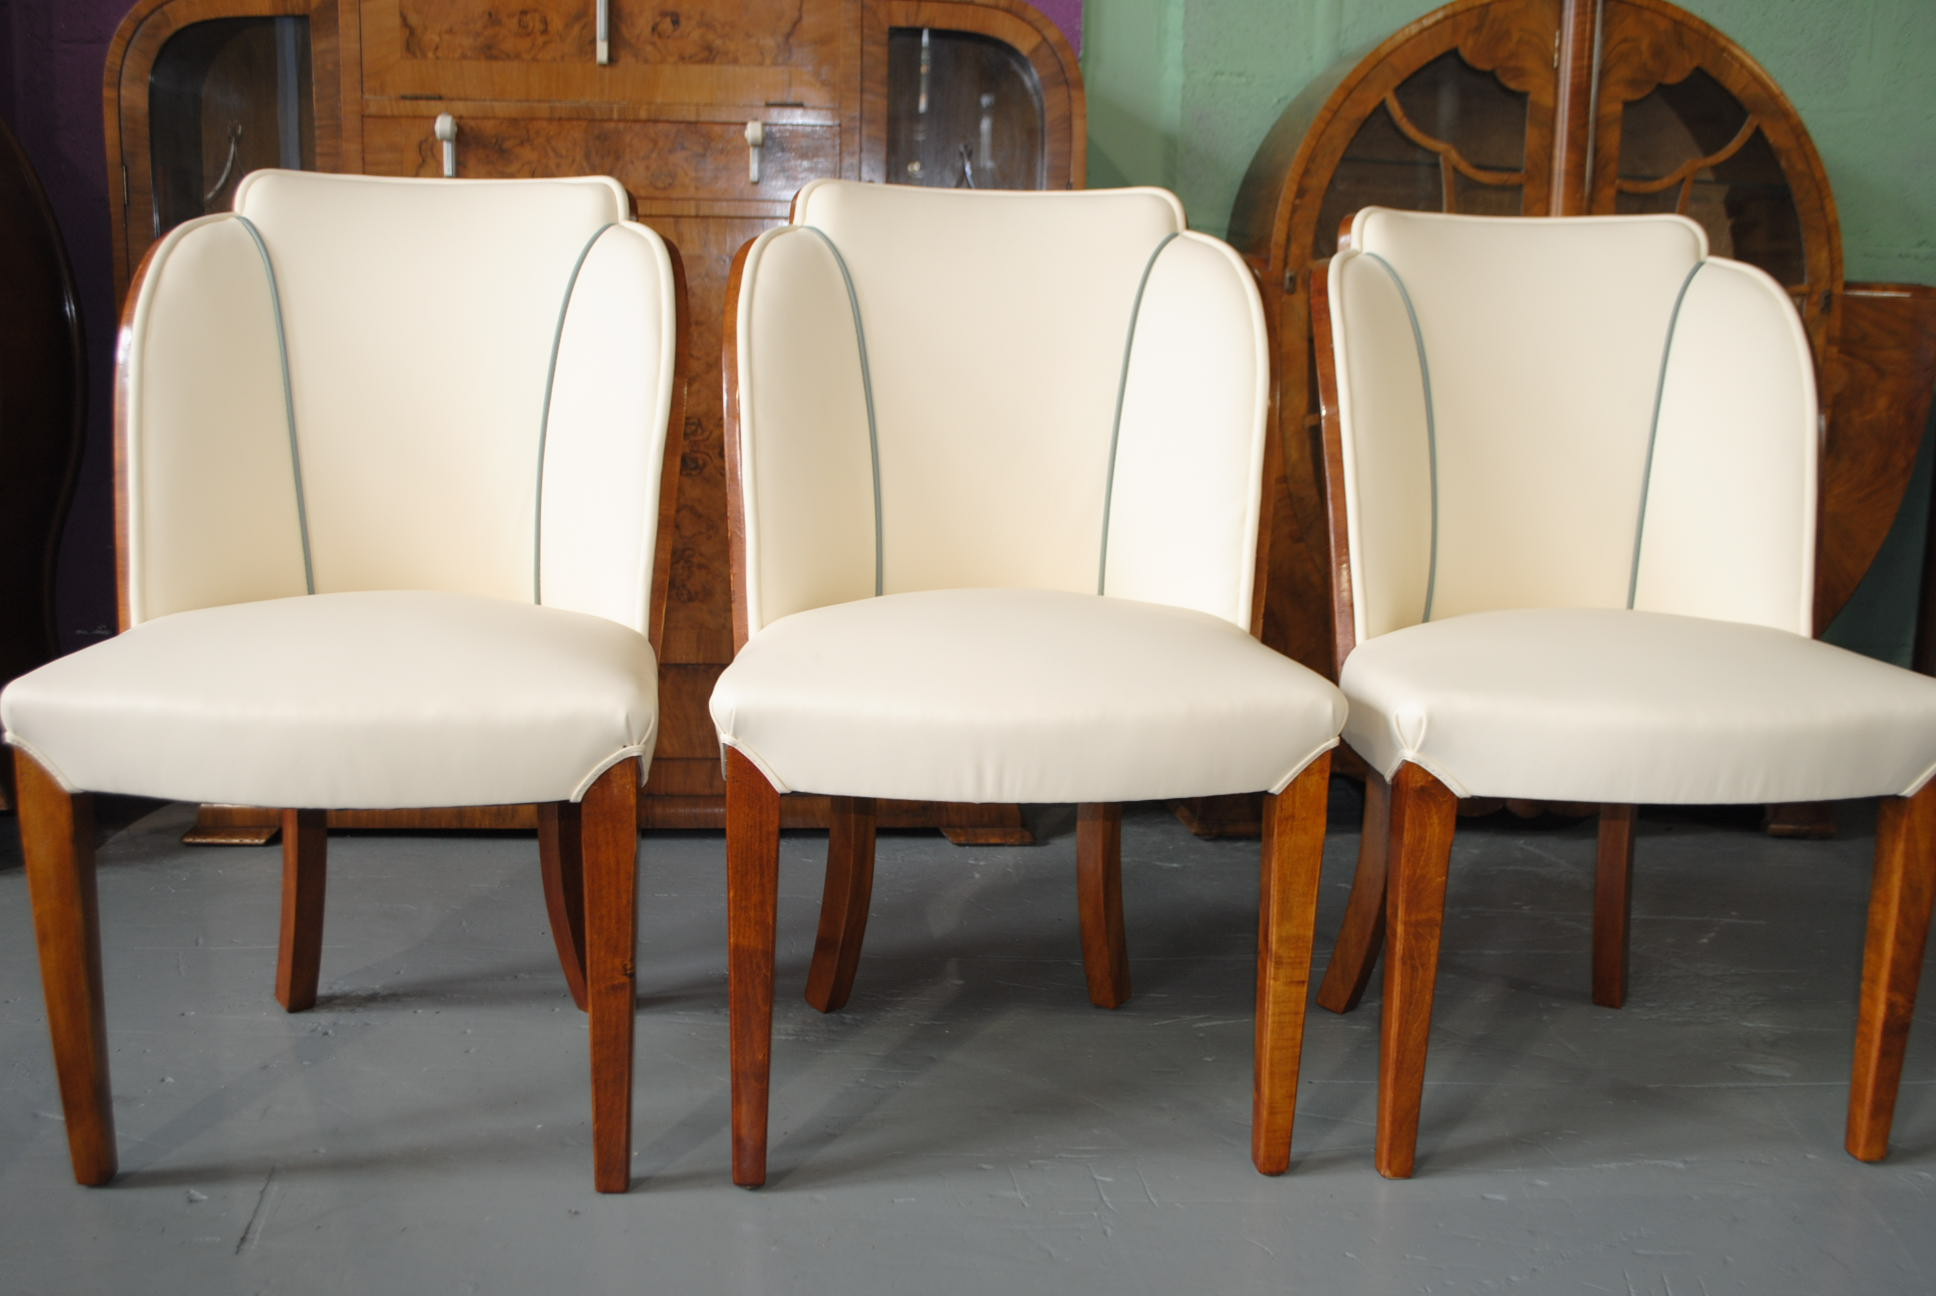 Image Result For Chair Purchasea